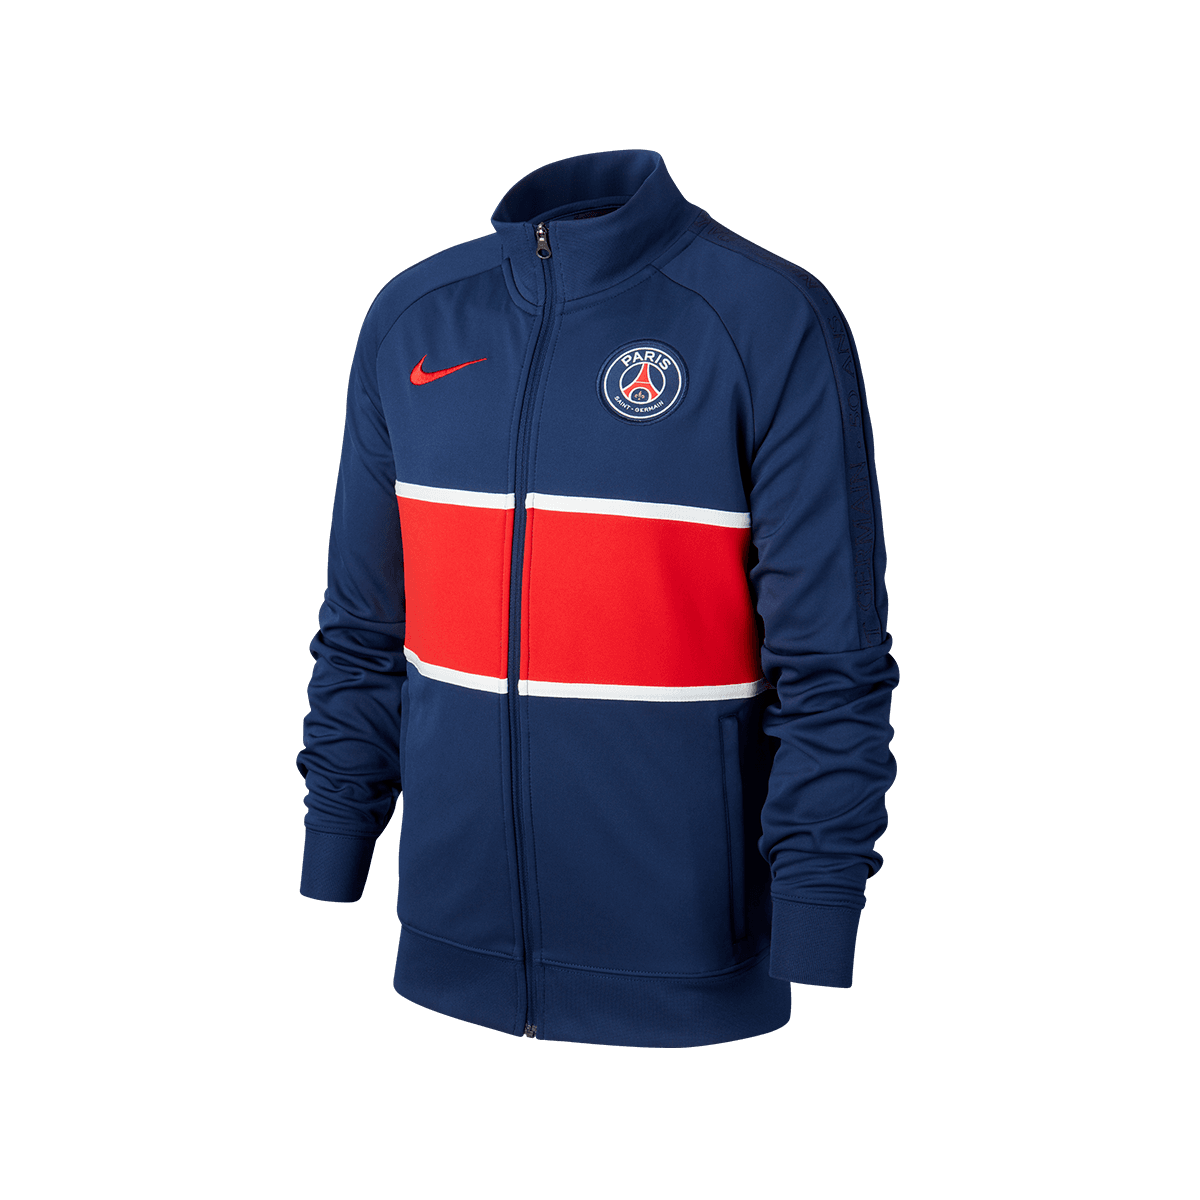 Nike Paris St. Germain Kinder Fanjacke I96 Anthem Jacket dunkelblaurot